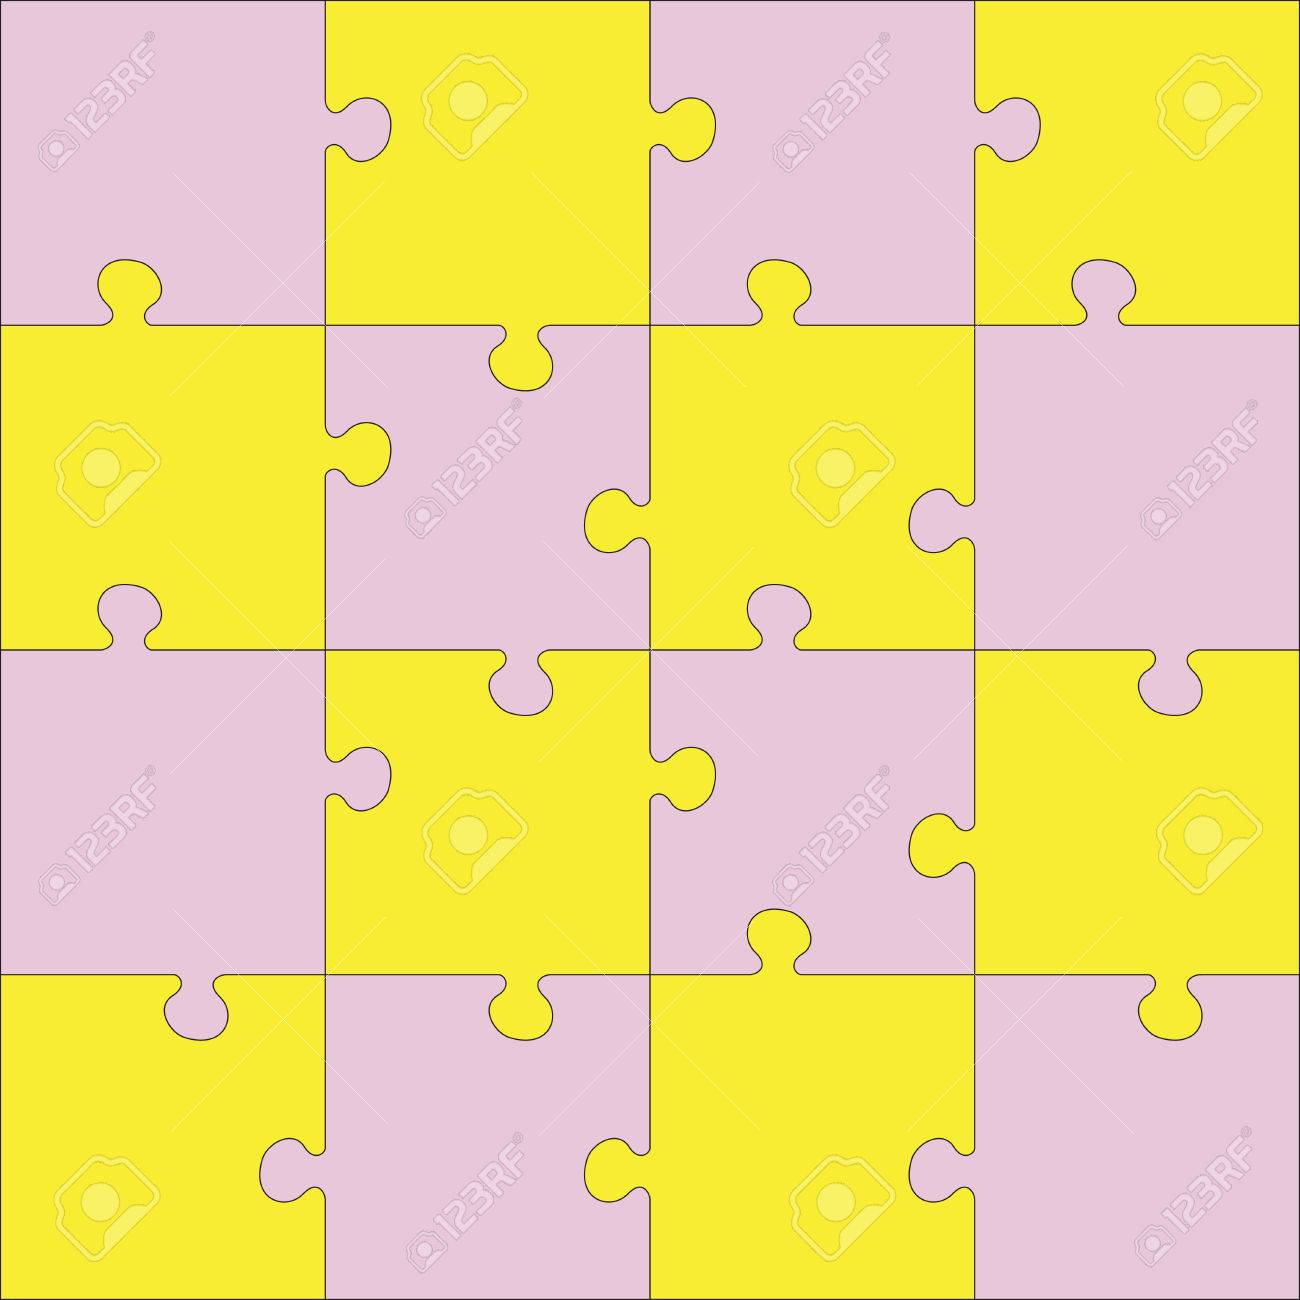 Color Jigsaw Puzzle Every Piece Is A Single Shape Seamless Texture